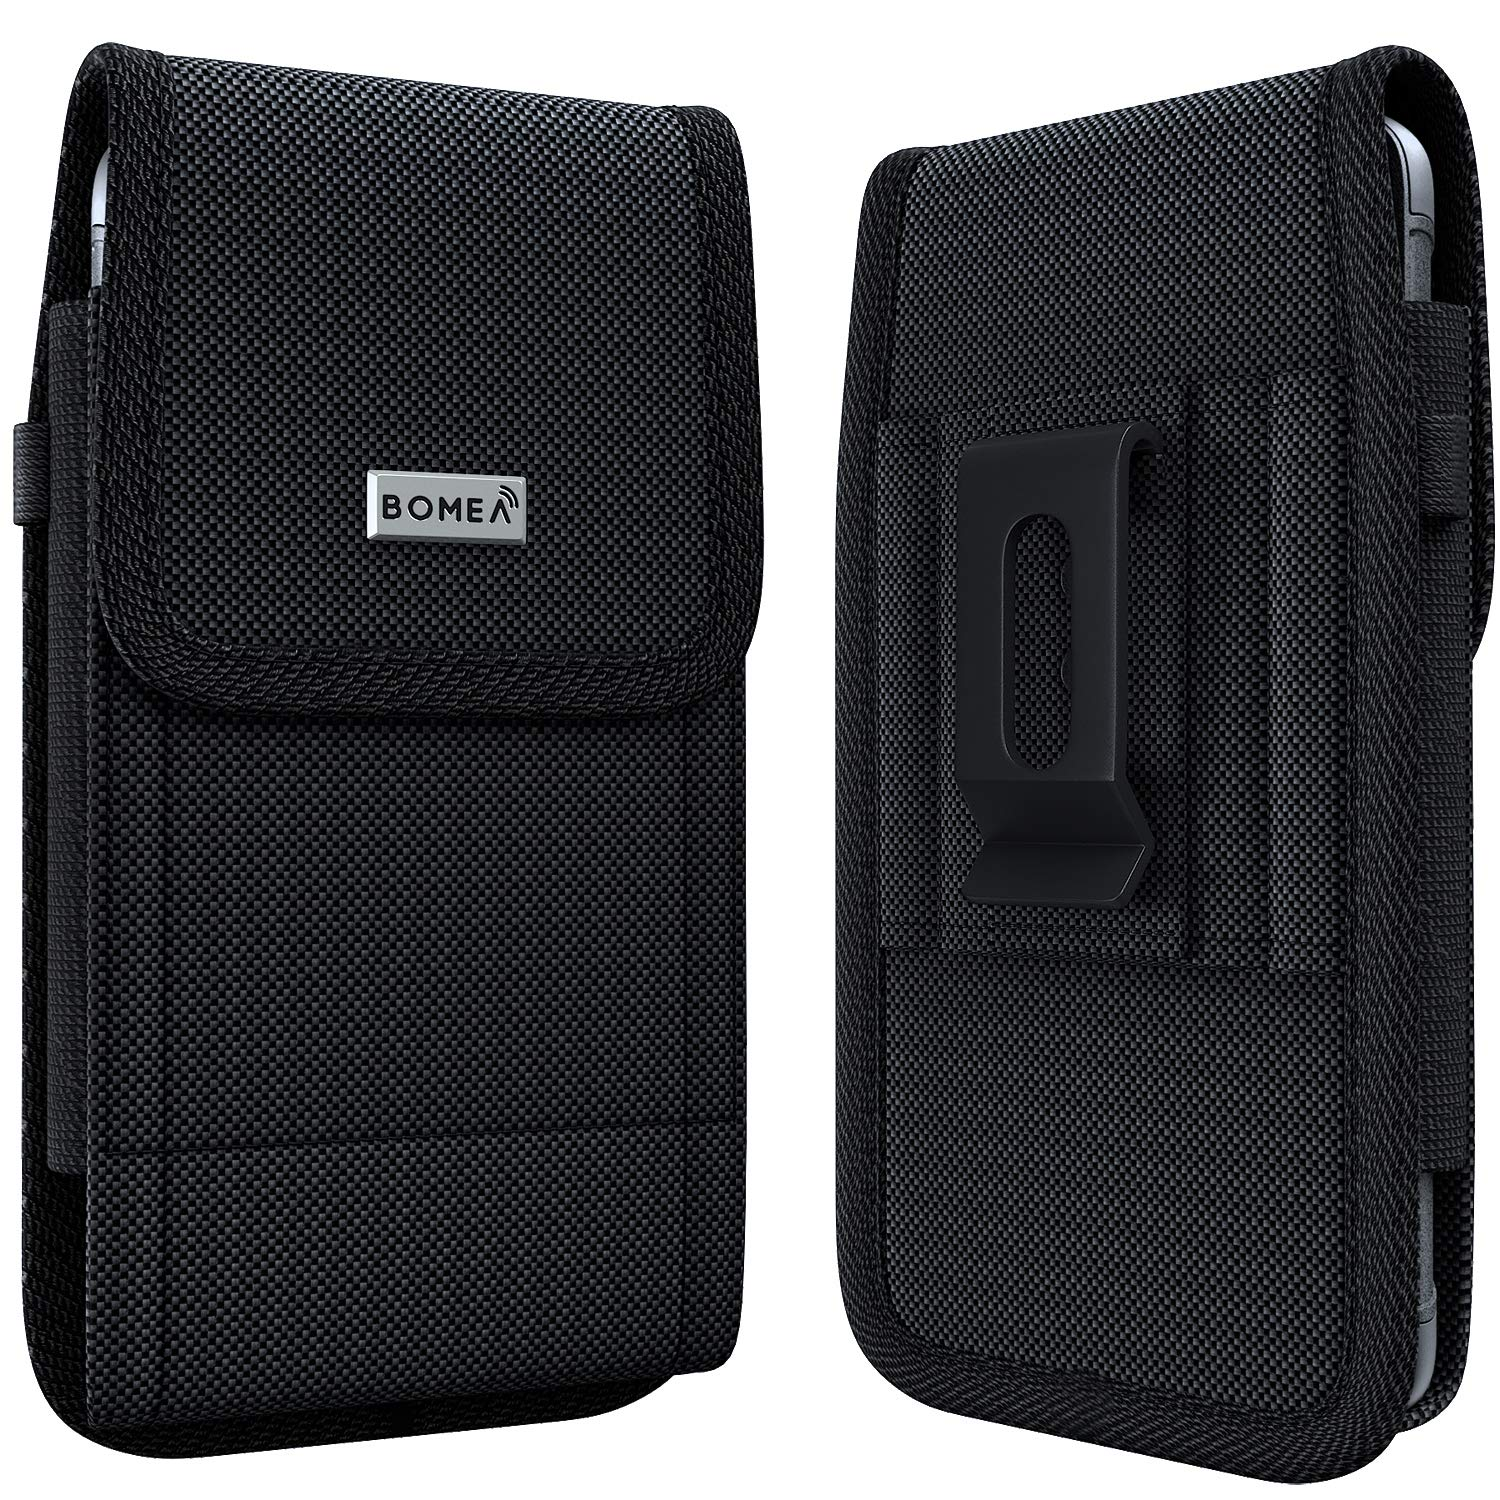 Bomea iPhone Holster Rugged Tactical